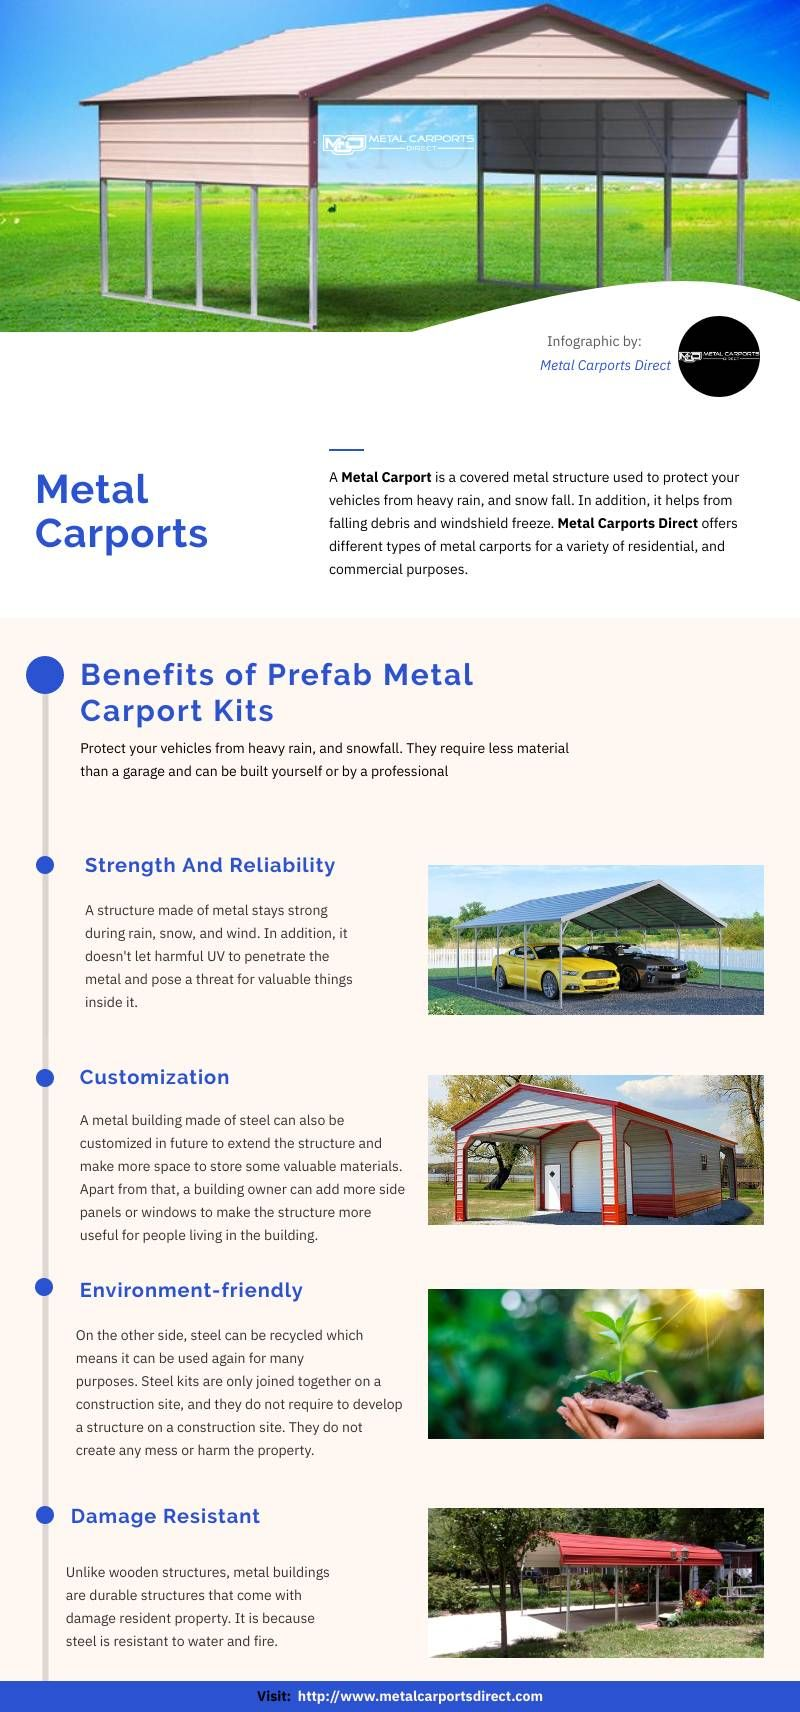 Metal carport kits are a covered structure used for